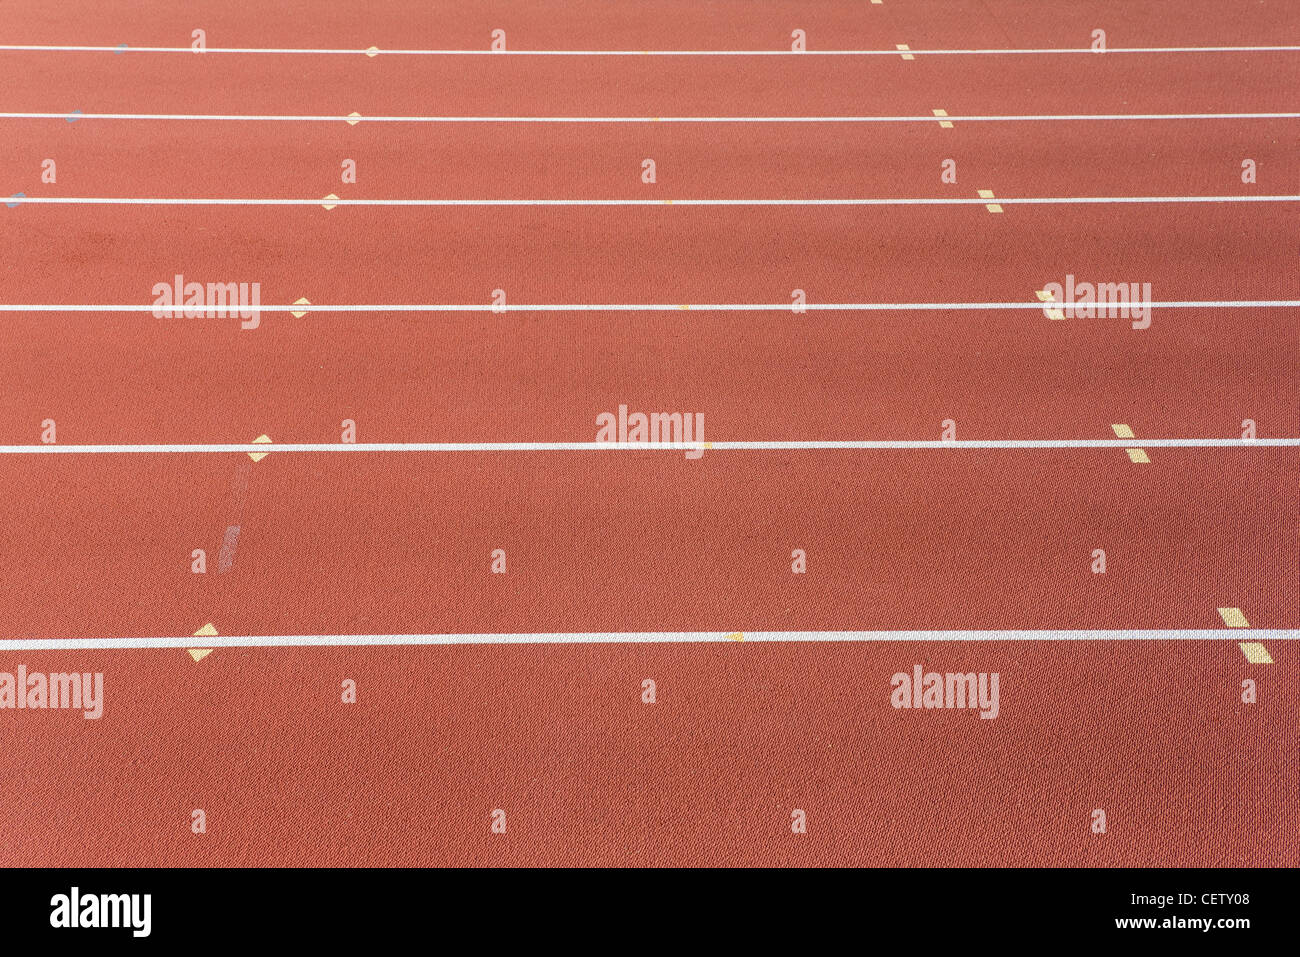 Lanes of running track - Stock Image